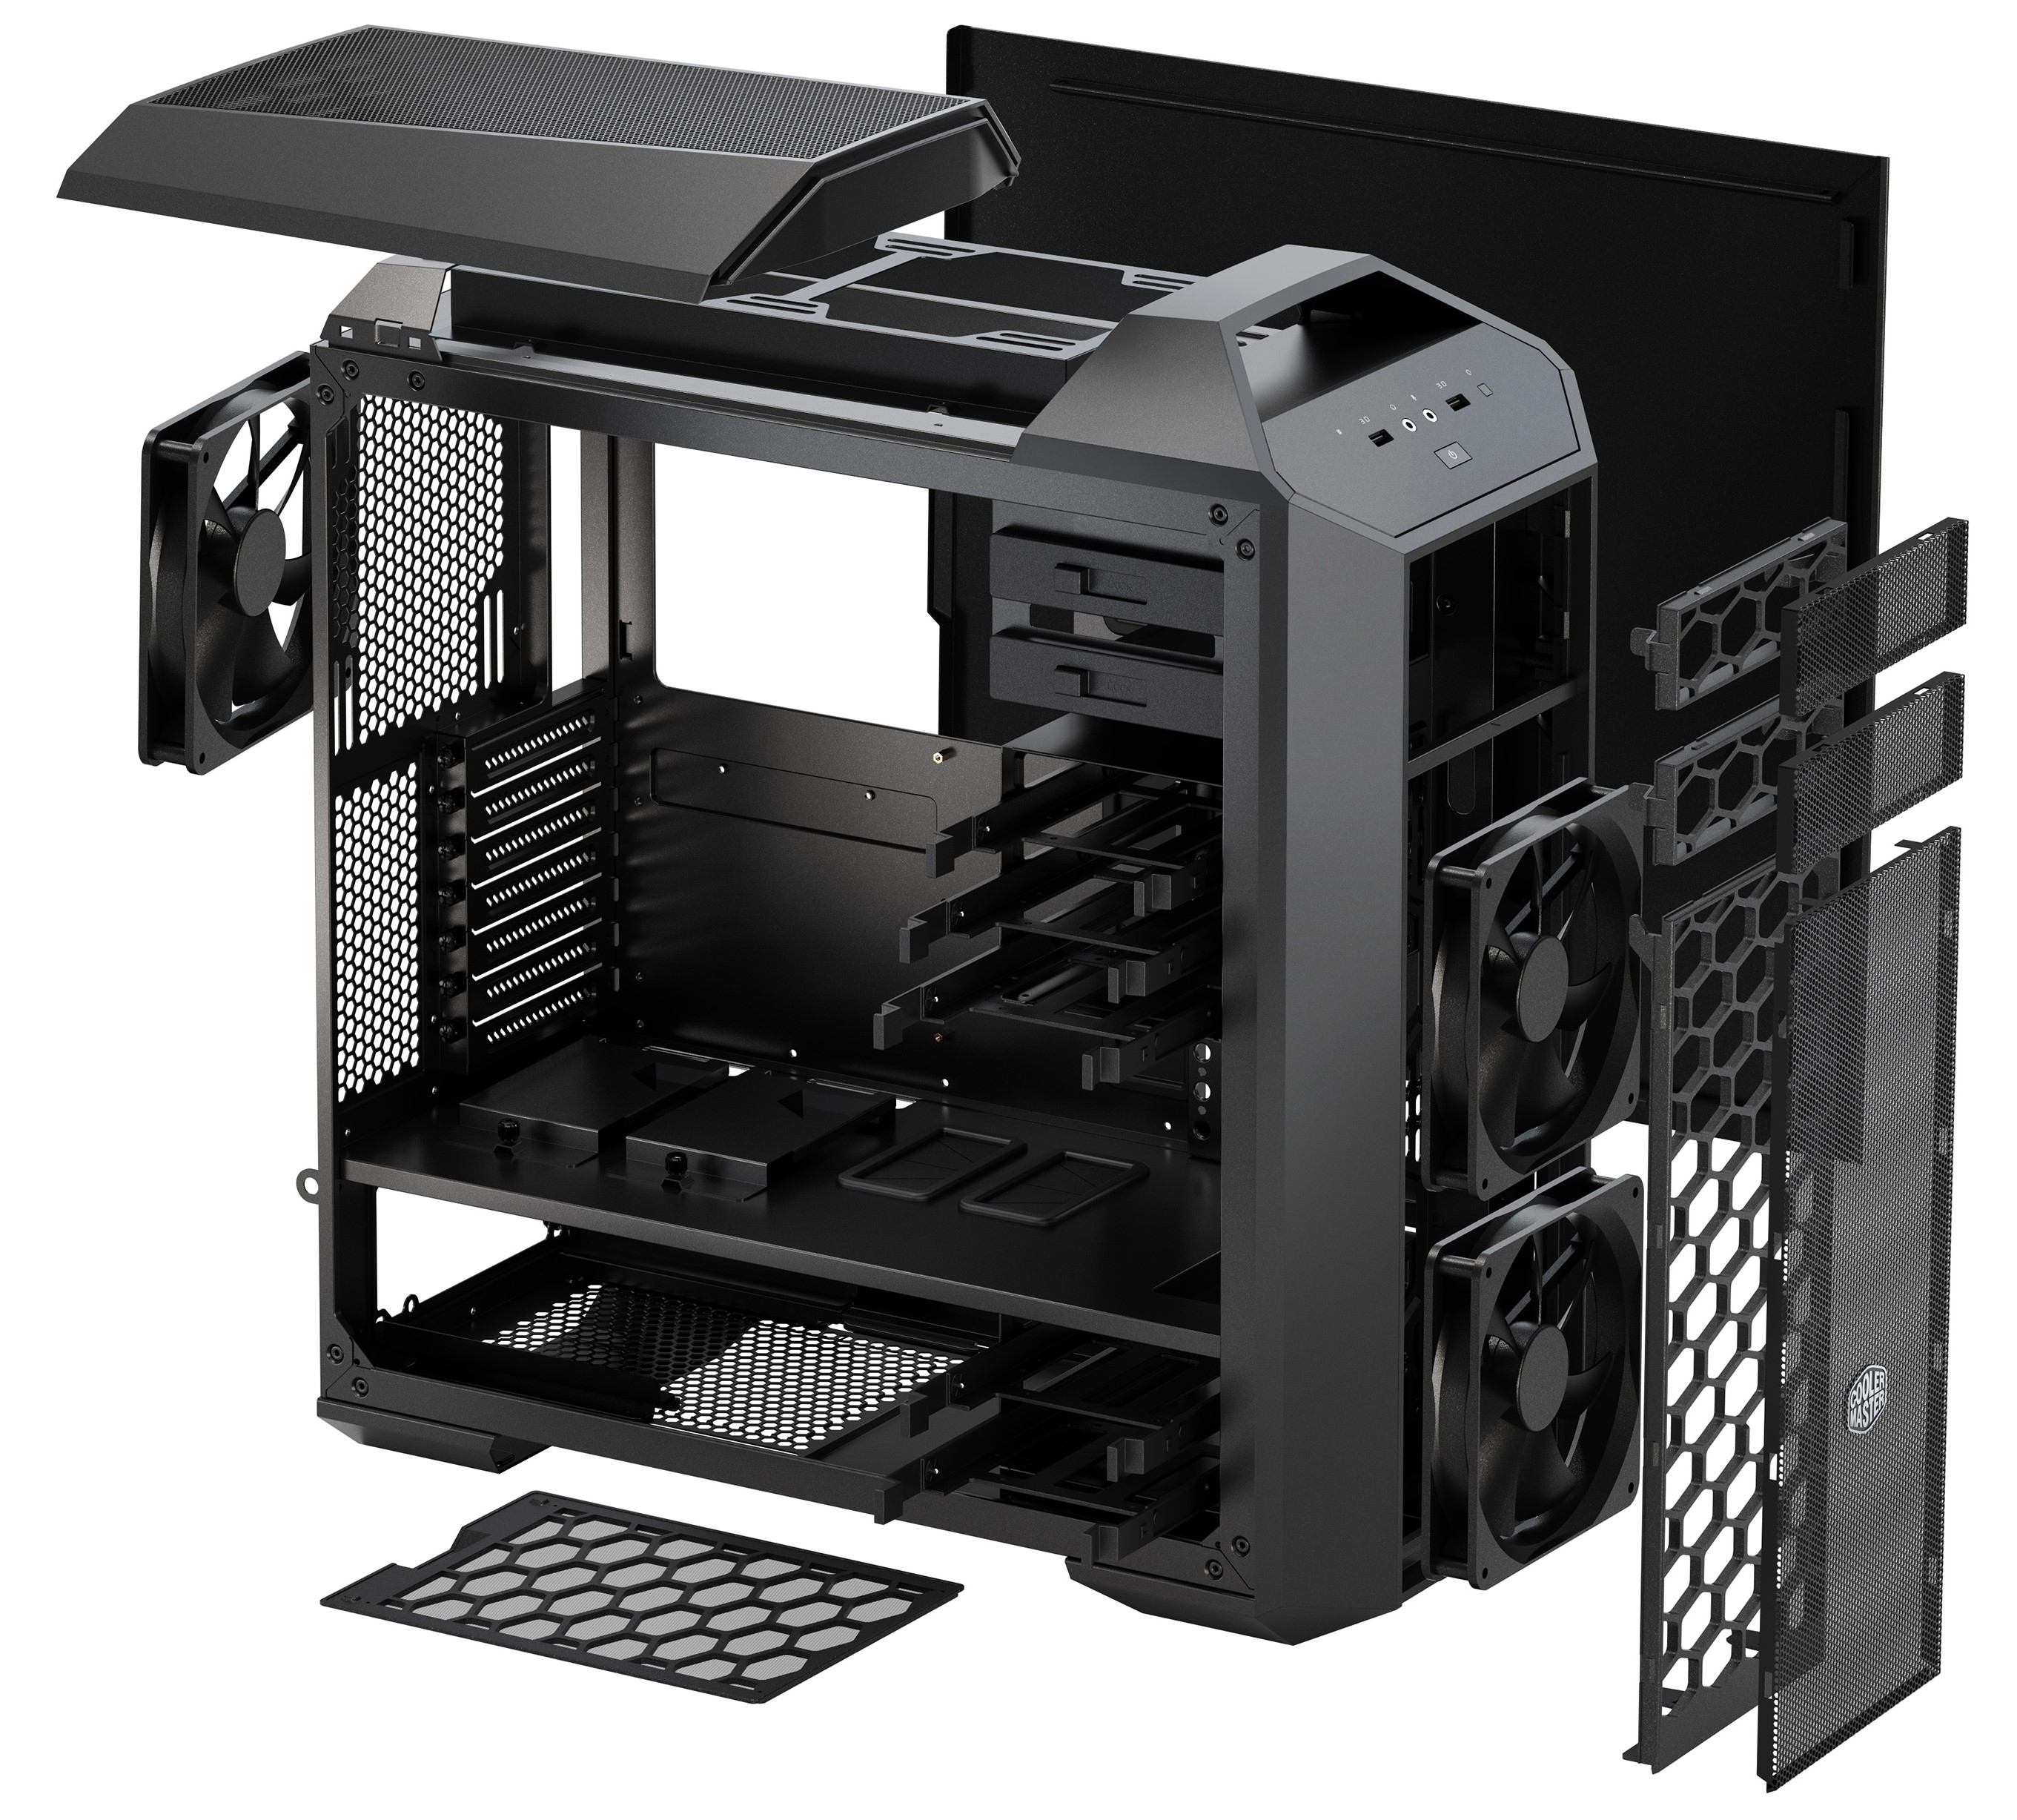 Cooler Master MasterCase 5 and Pro 5 launched